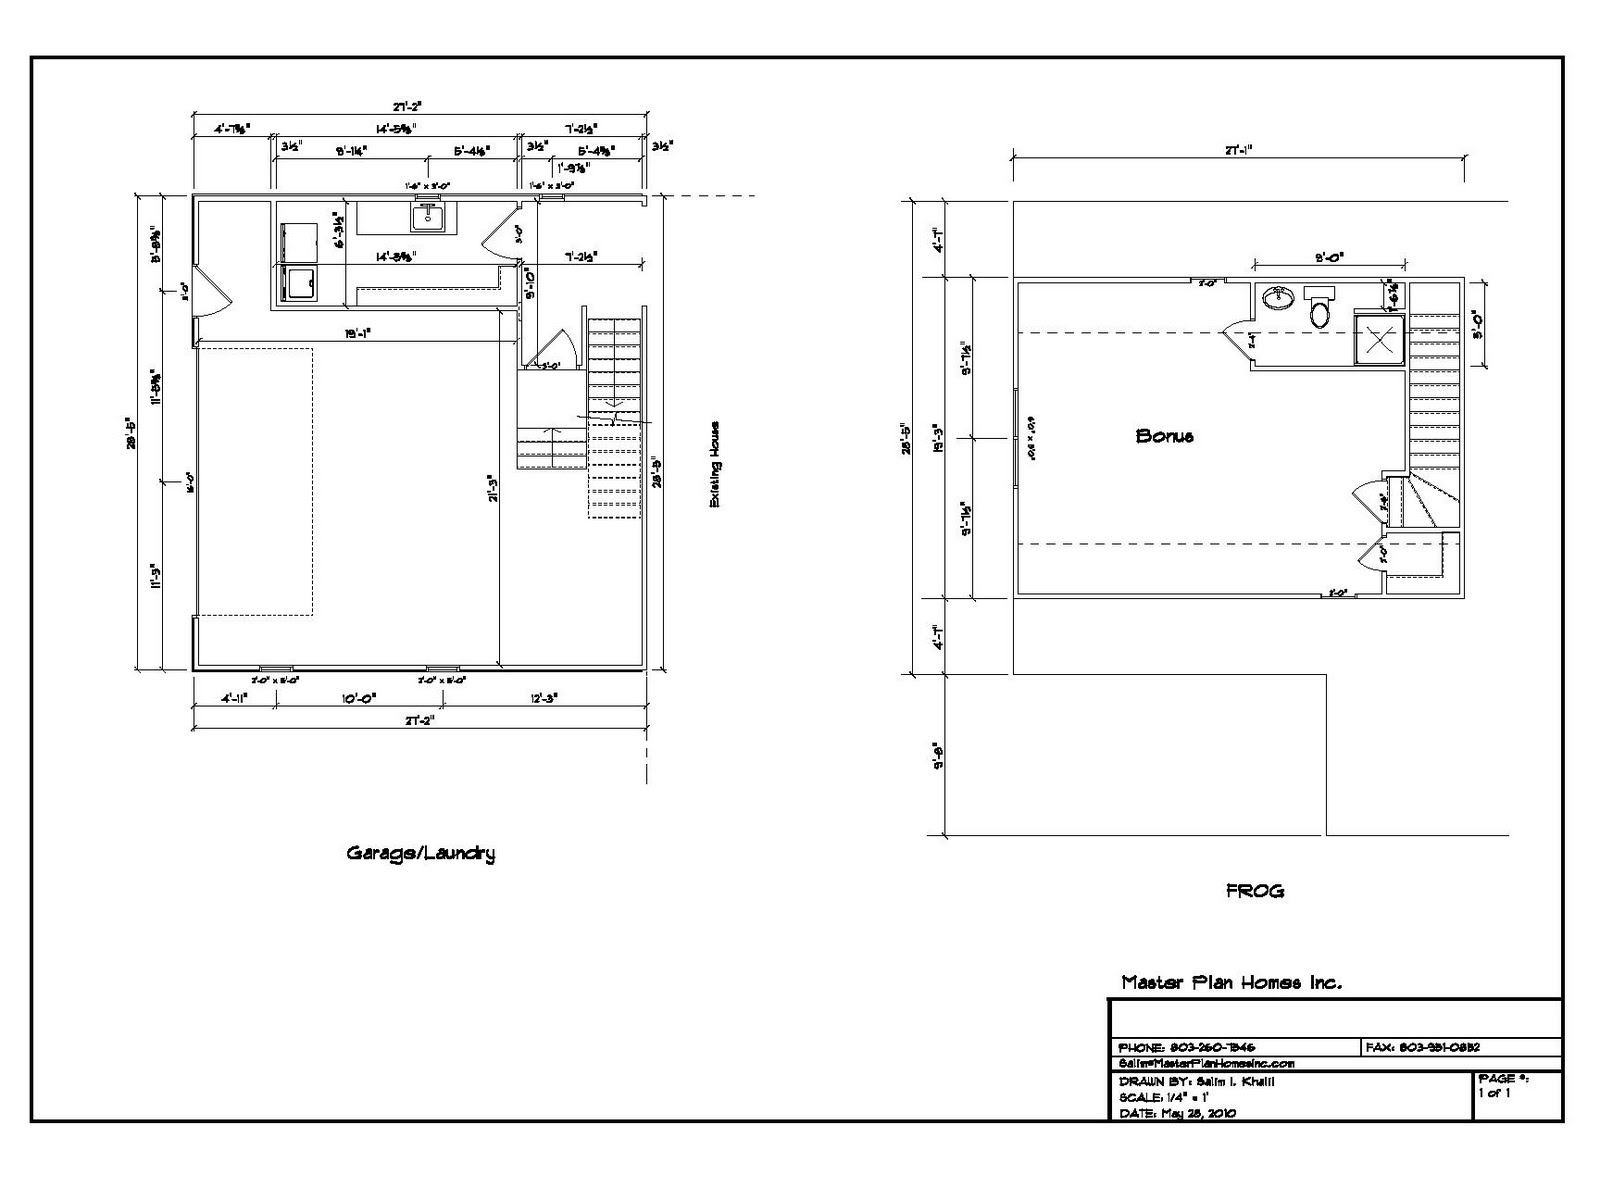 Master plan homes inc blog garage laundry room over for Laundry room addition floor plans